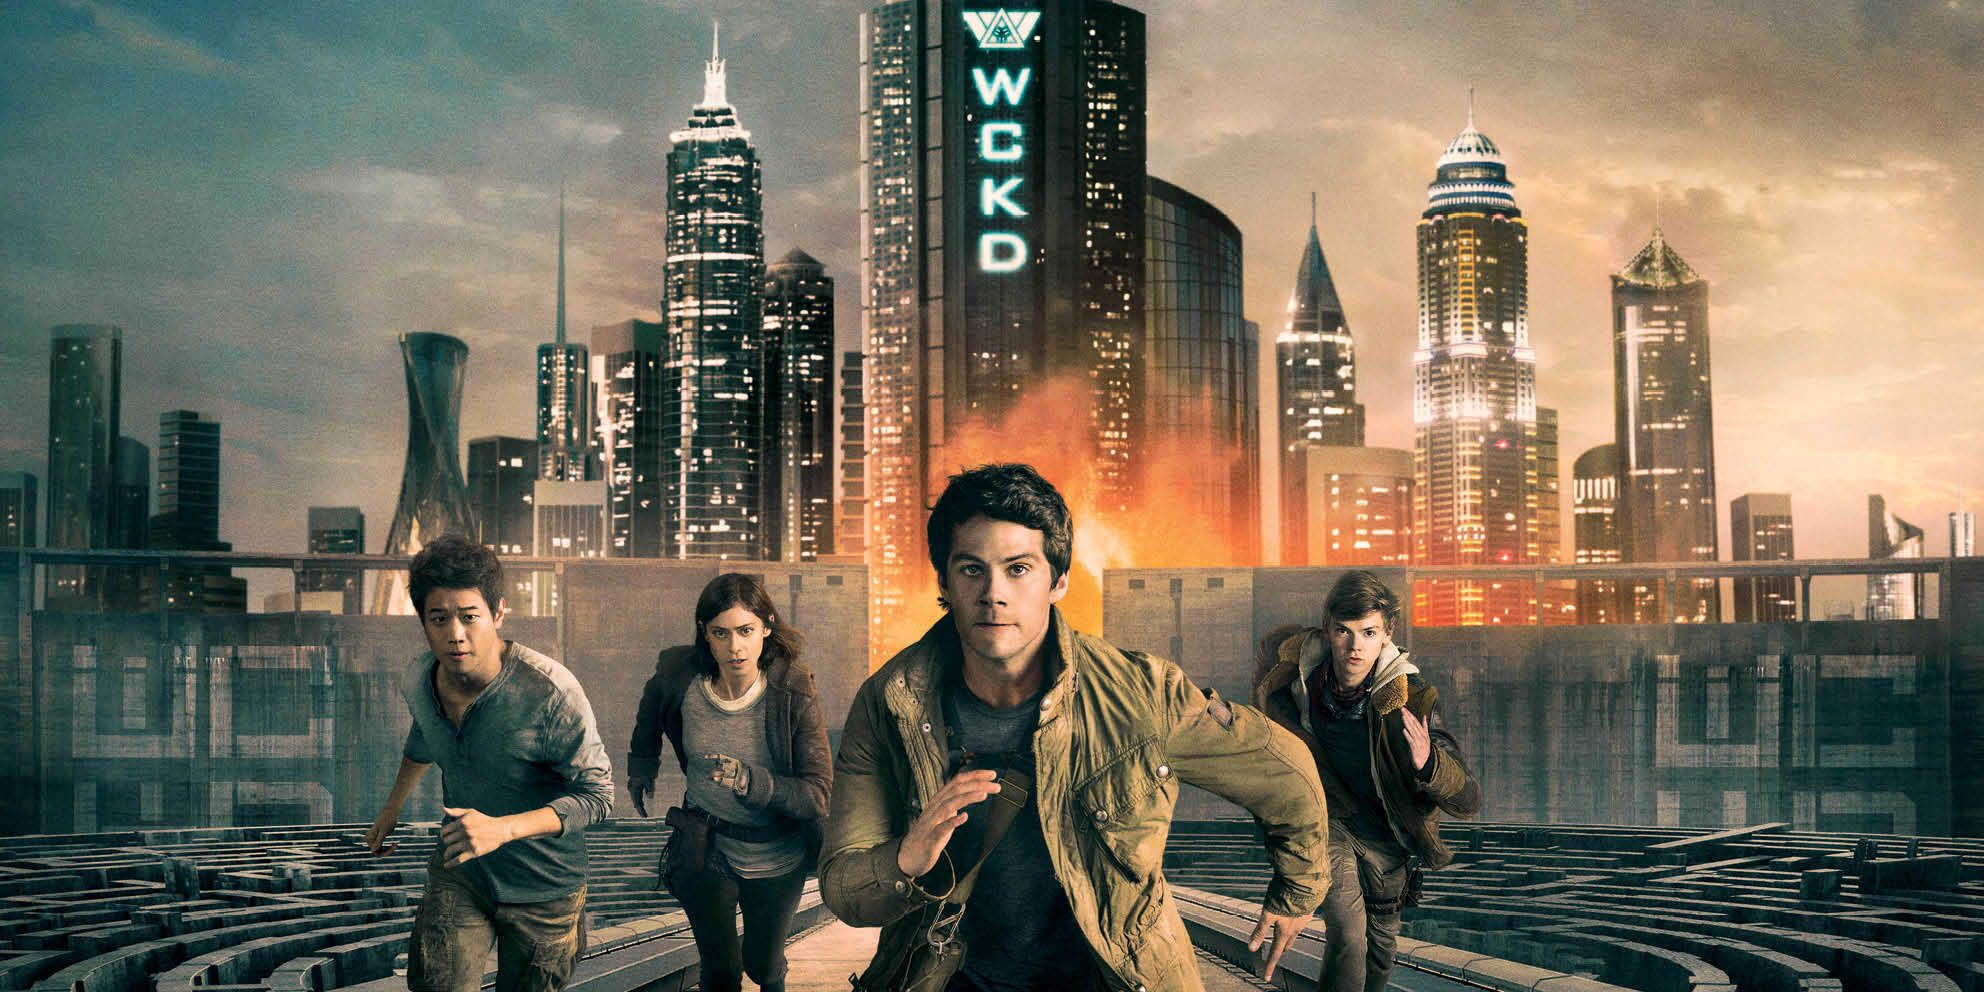 Maze-Runner-The-Death-Cure-Movie-Review.jpg